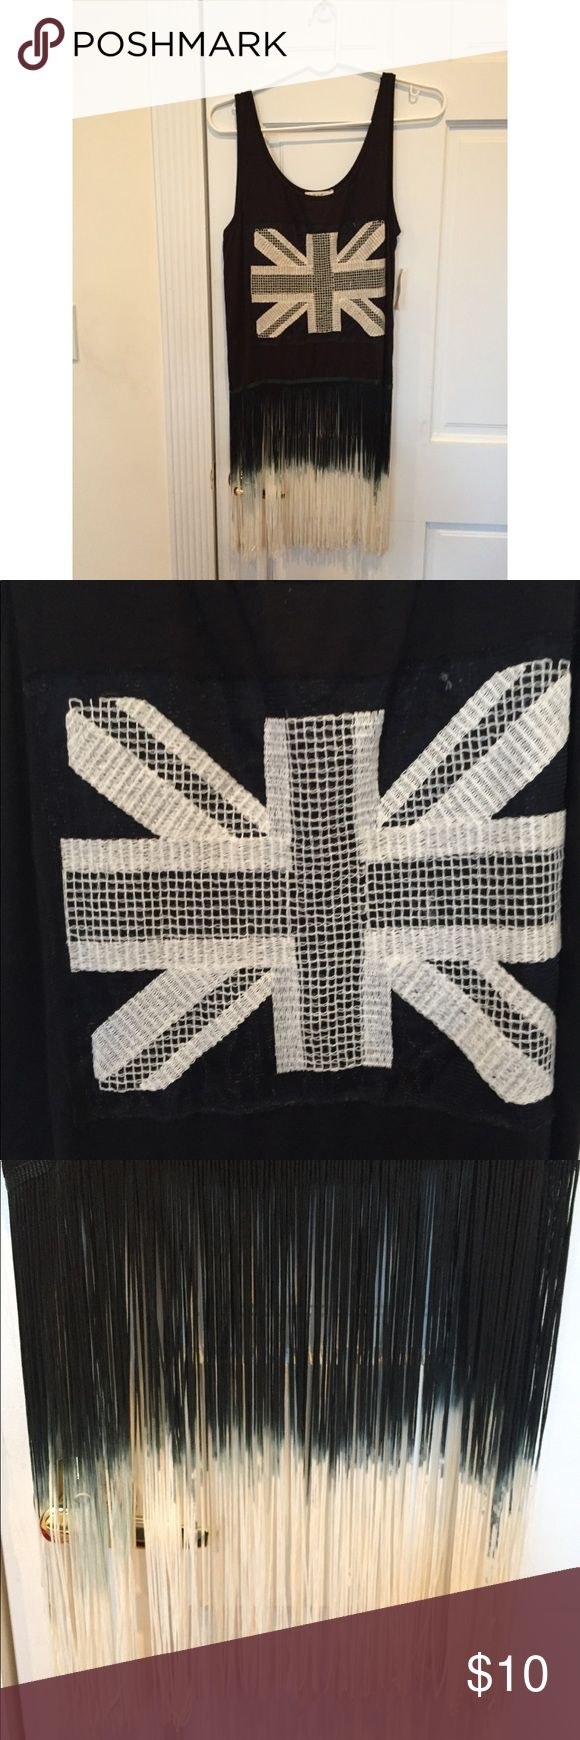 London Flag fringed tank NWT black tank top with London flag embroidery and dip dyed fringe. Tops